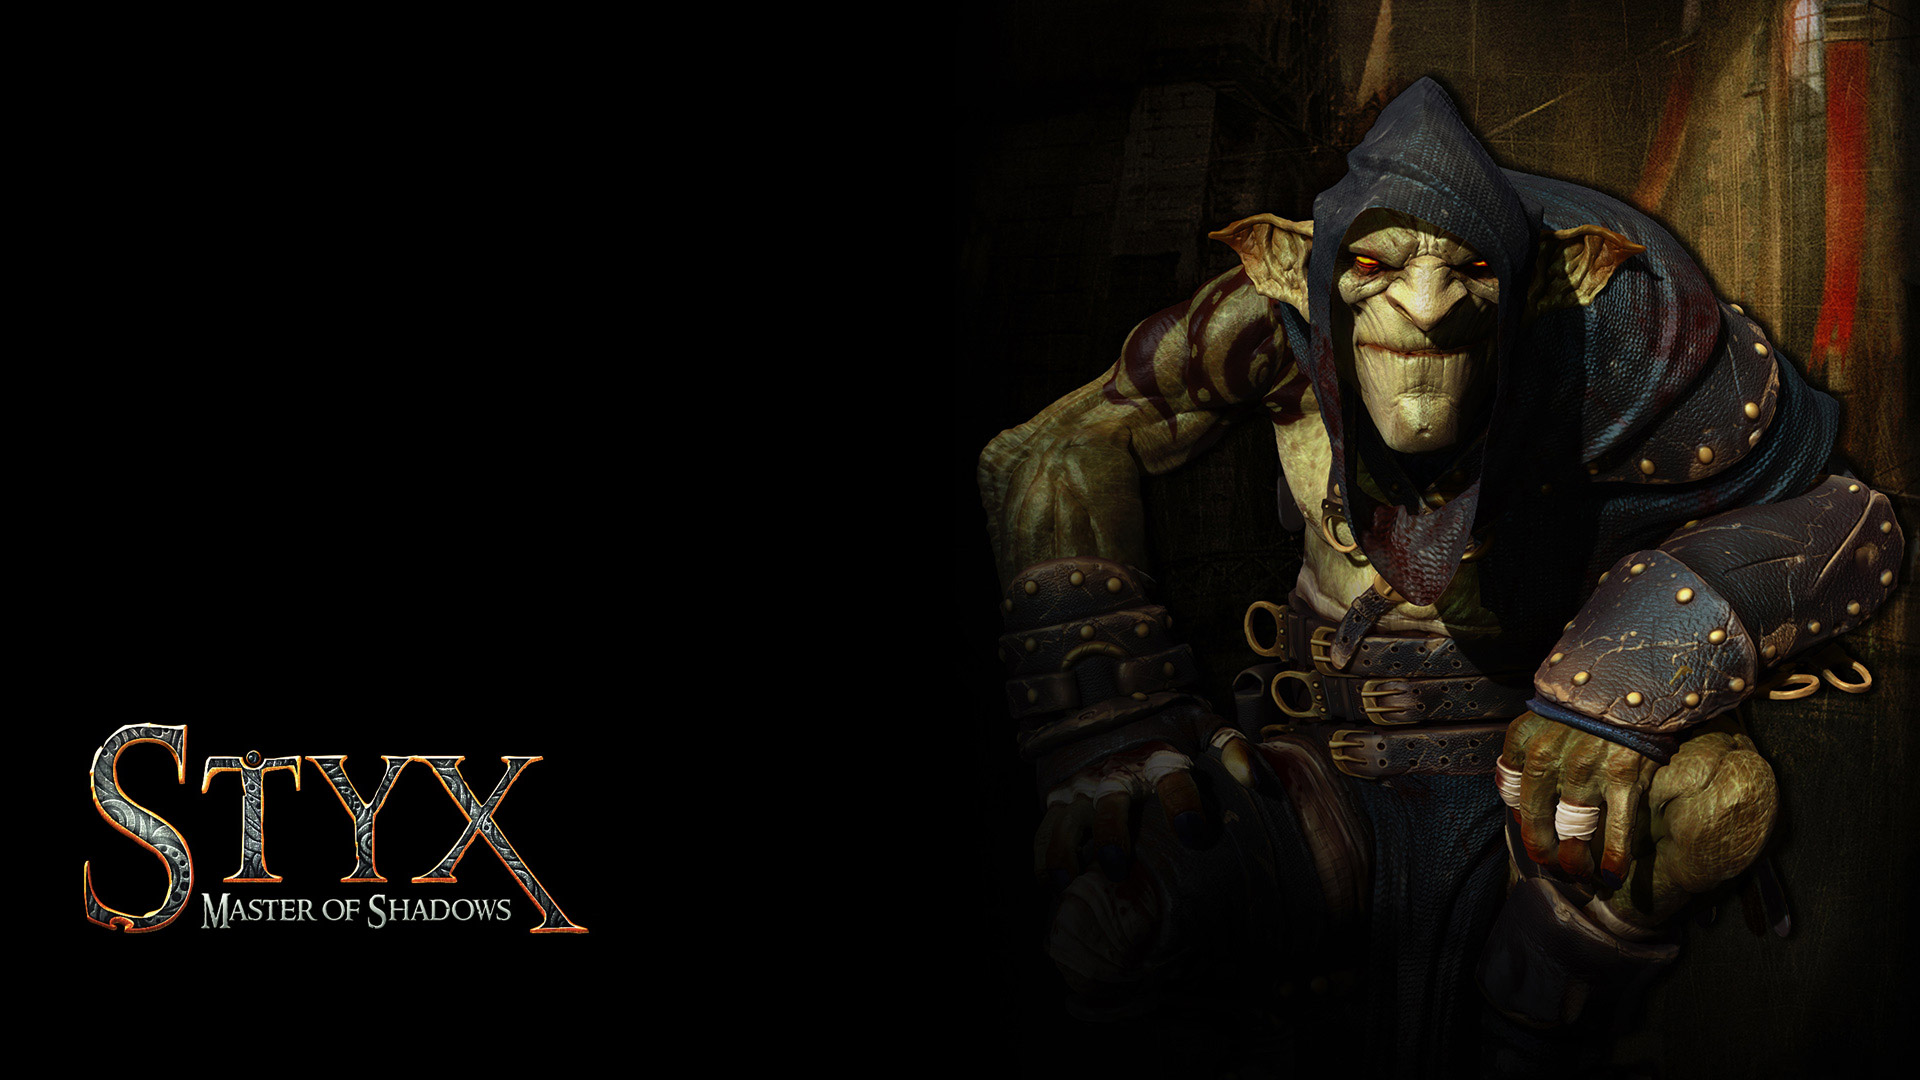 Free Styx: Master of Shadows Wallpaper in 1920x1080